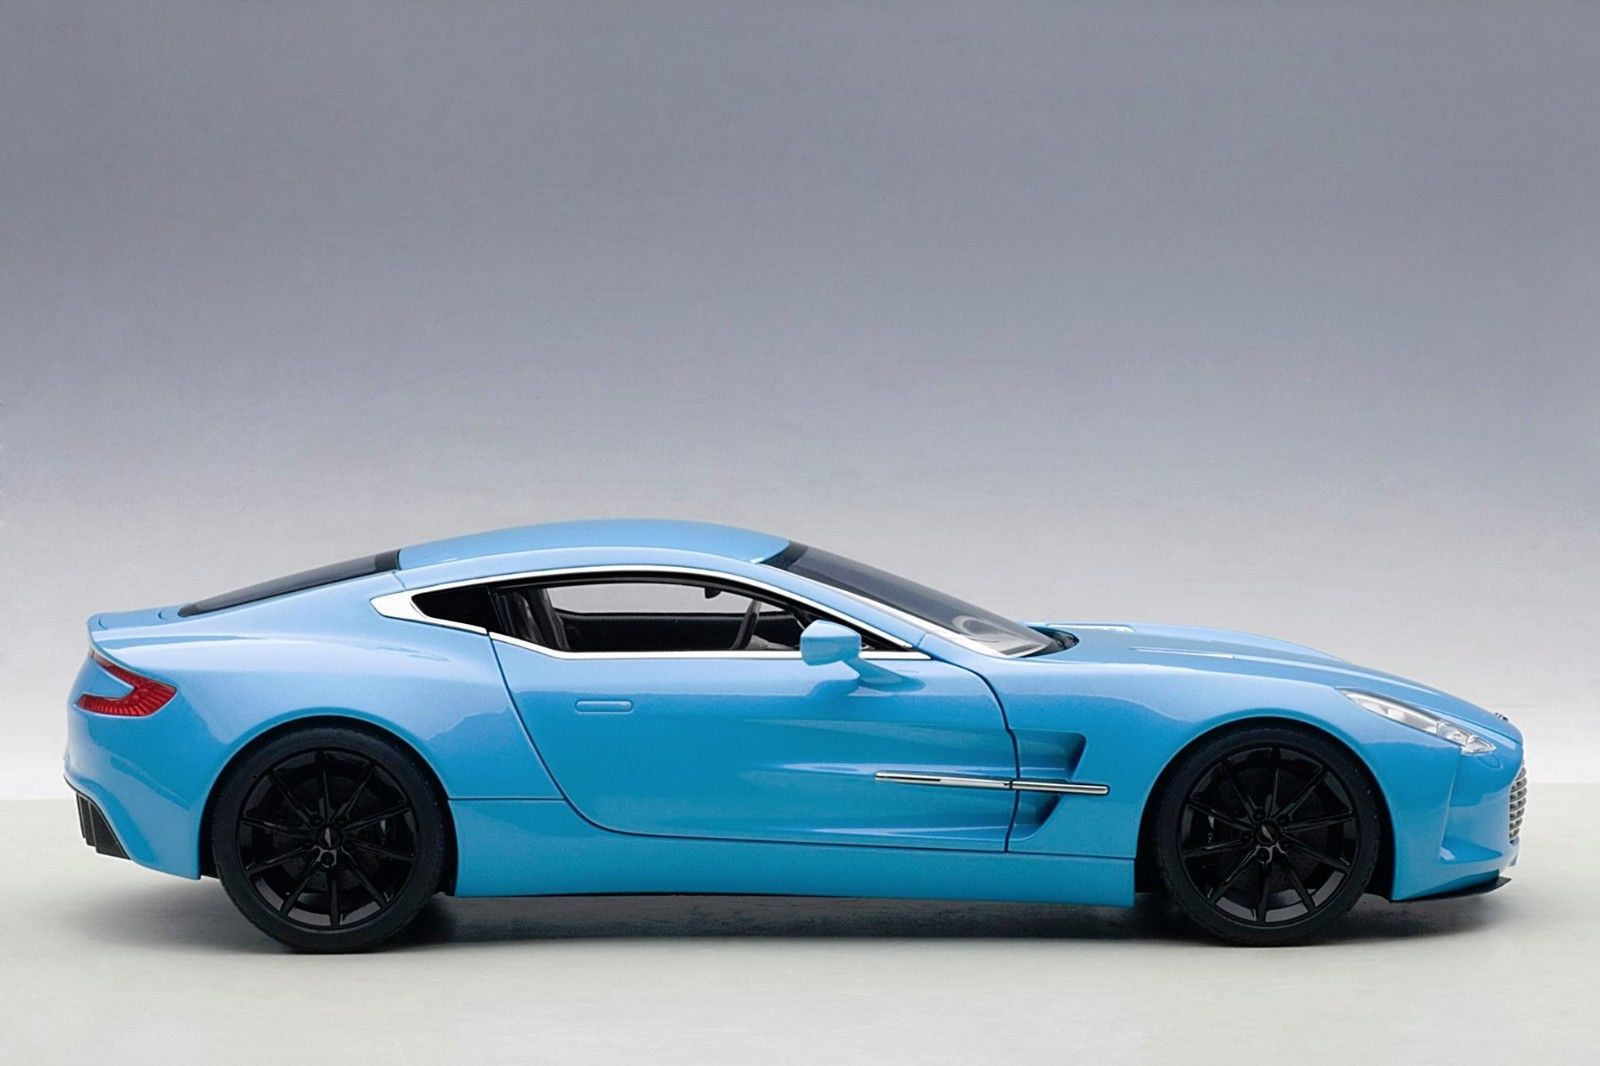 Home / Make / Aston Martin / AUTOart 70240 Aston Martin One 77 1:18 Tiffany  Blue